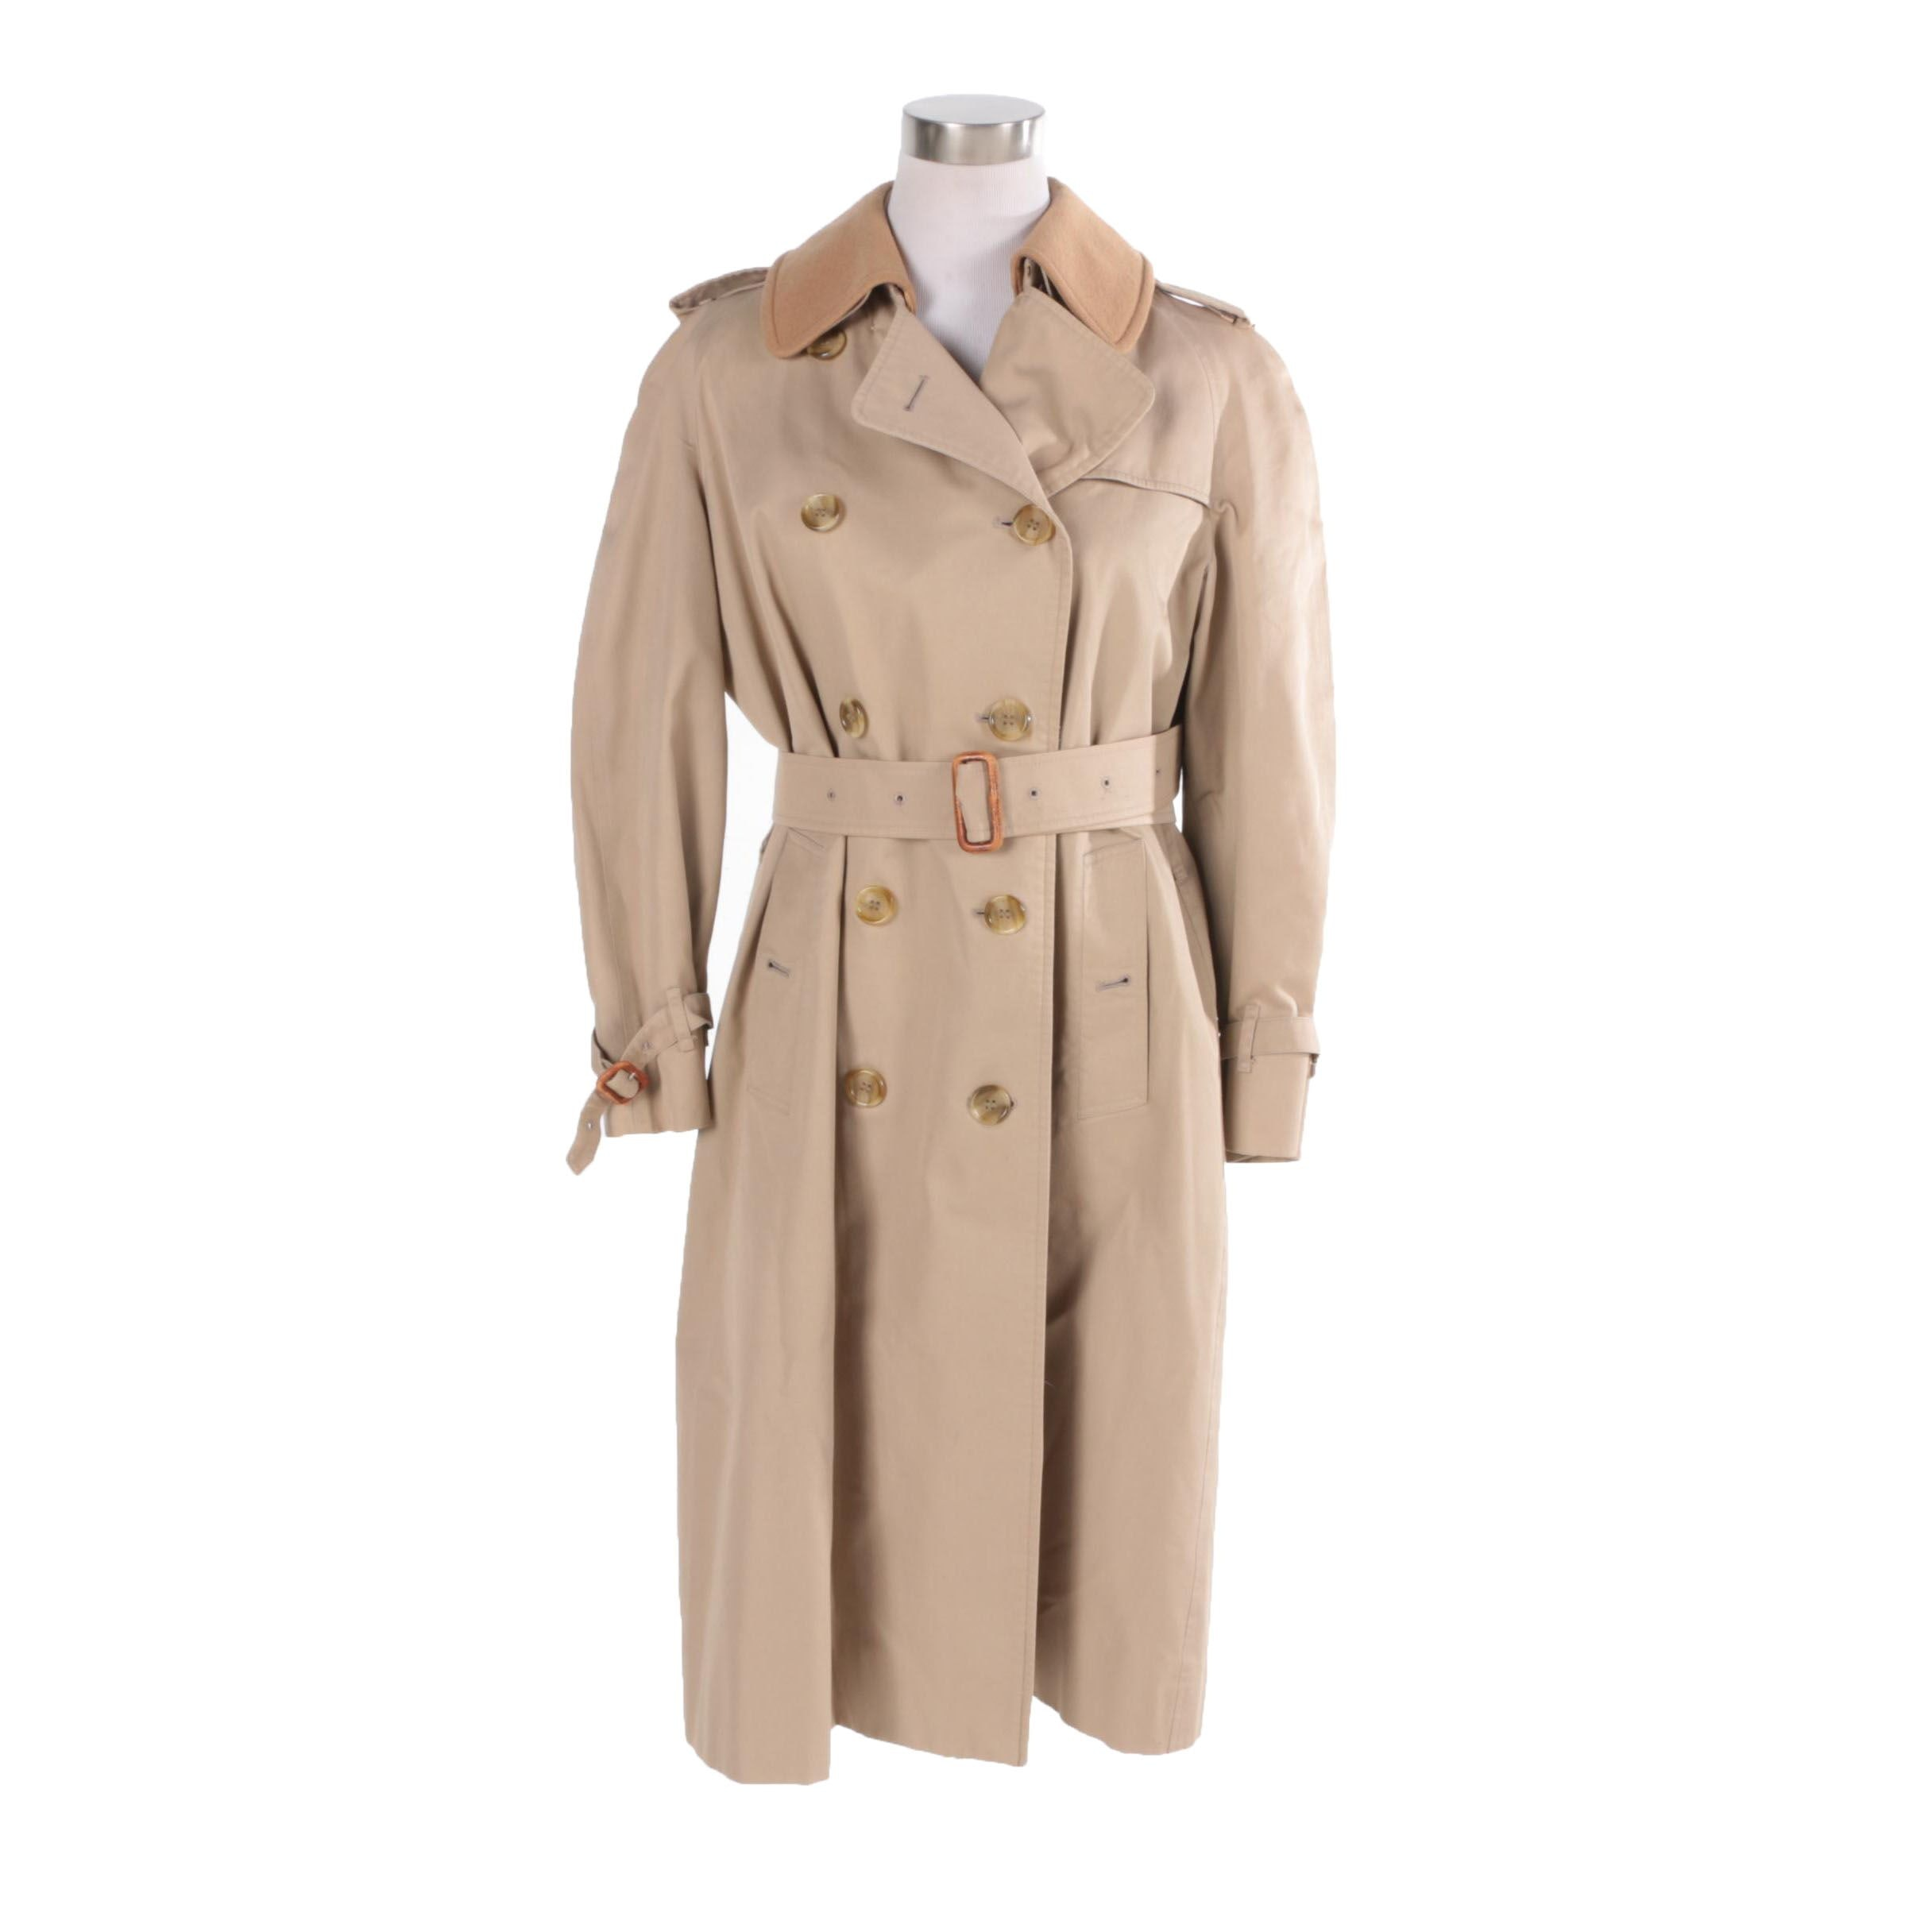 Womens 1980s Burberry Trench Coat with Removable Wool Lining